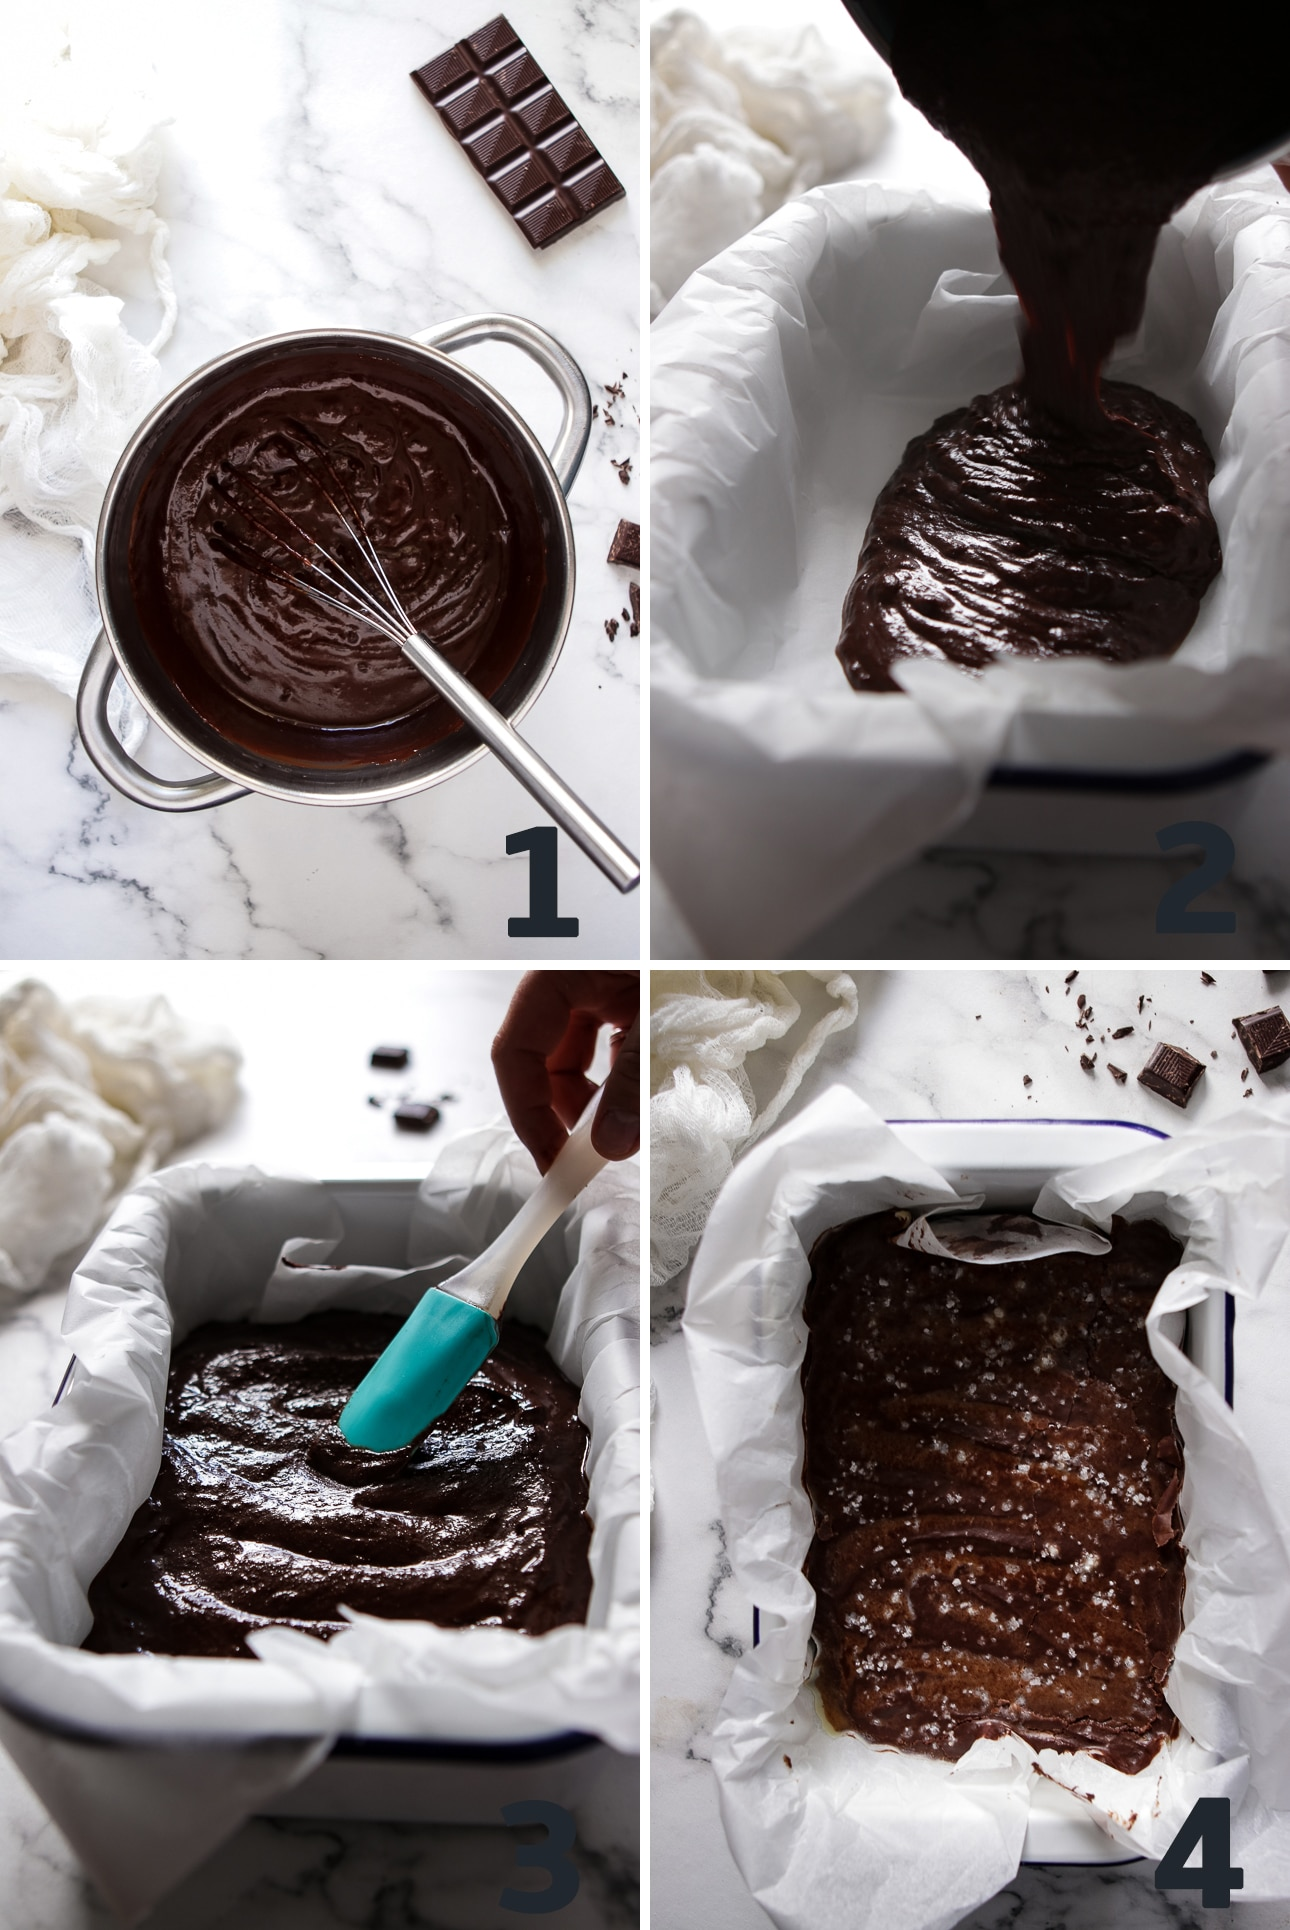 Instructions for Making the Best Vegan Chocolate Fudge